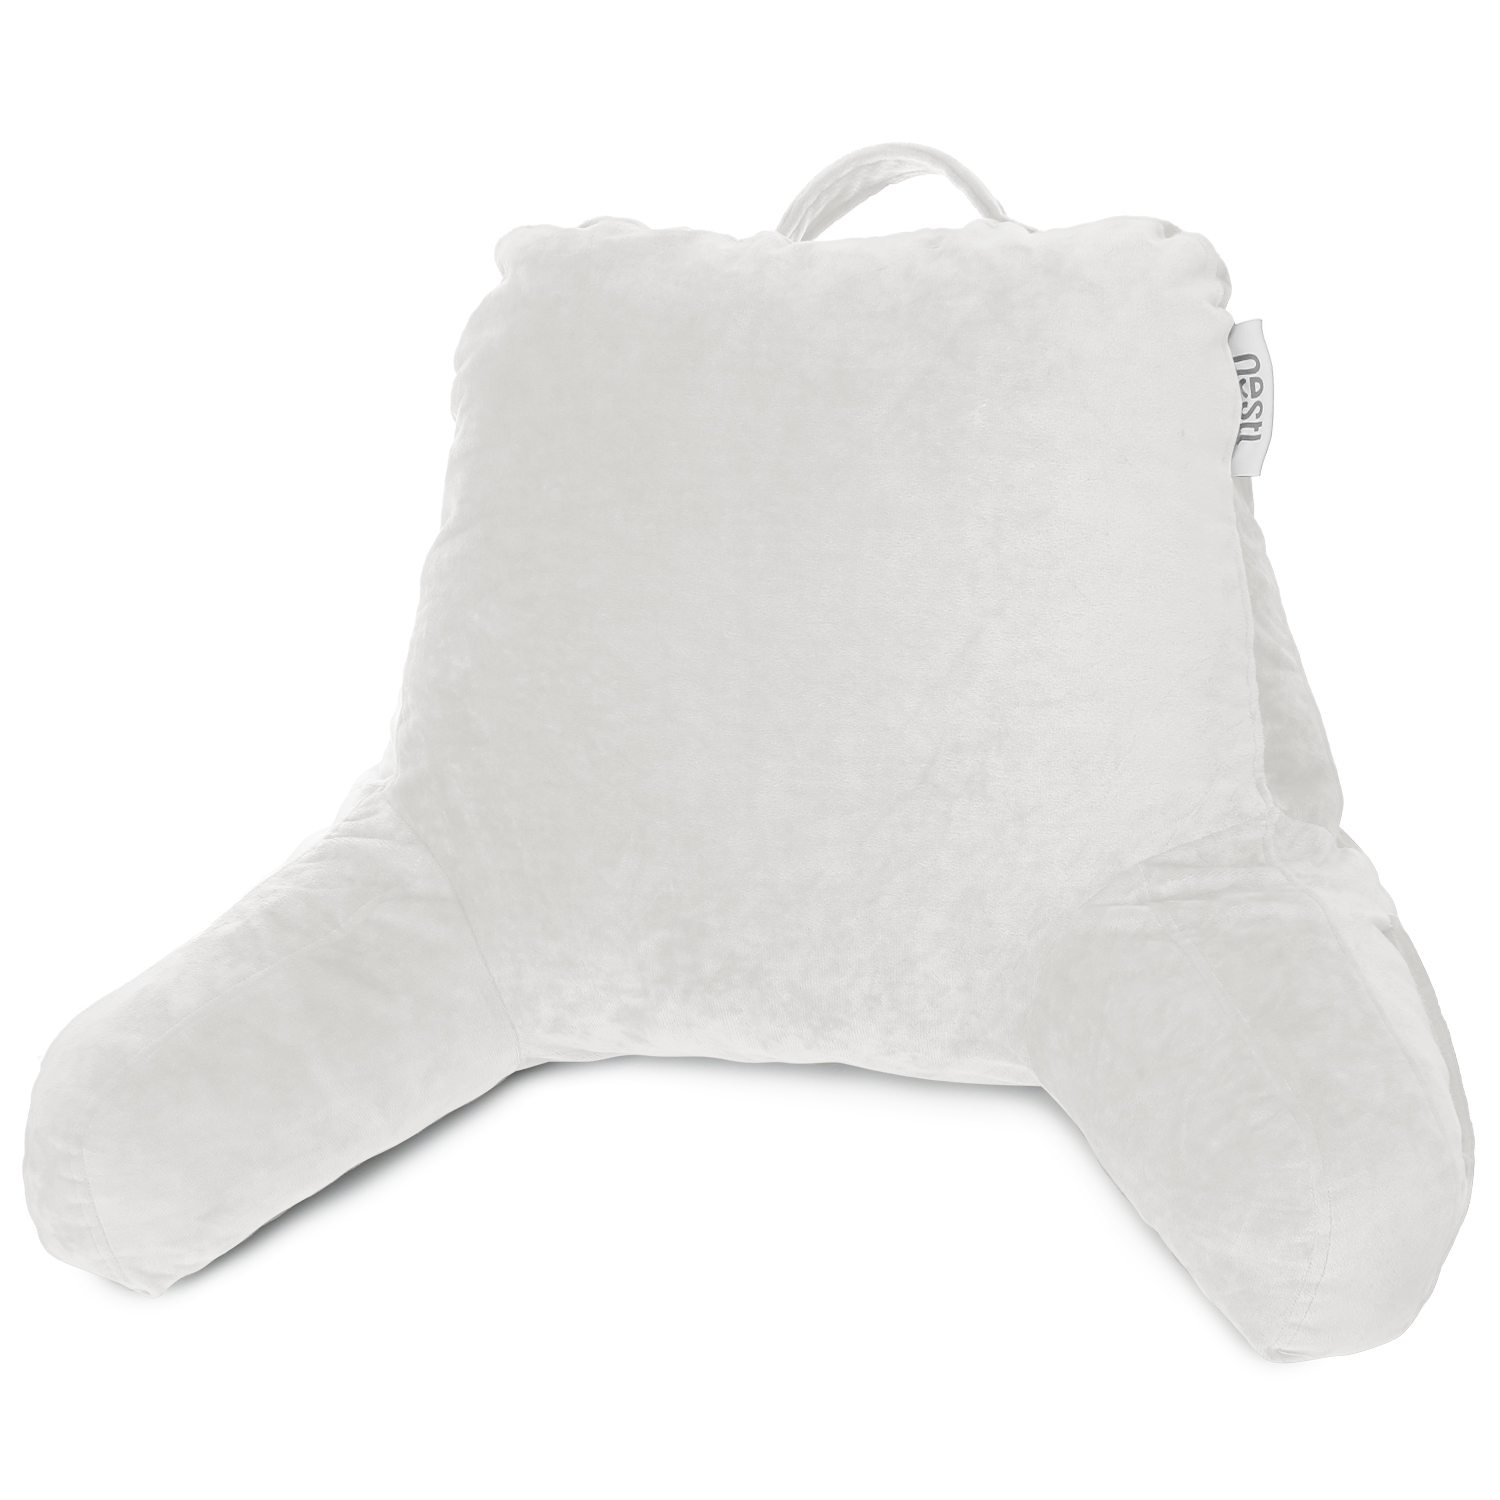 Super Foam Reading Pillow Tv Bed Rest Pillow Arms Support With Pockets White 541146155709 Ebay